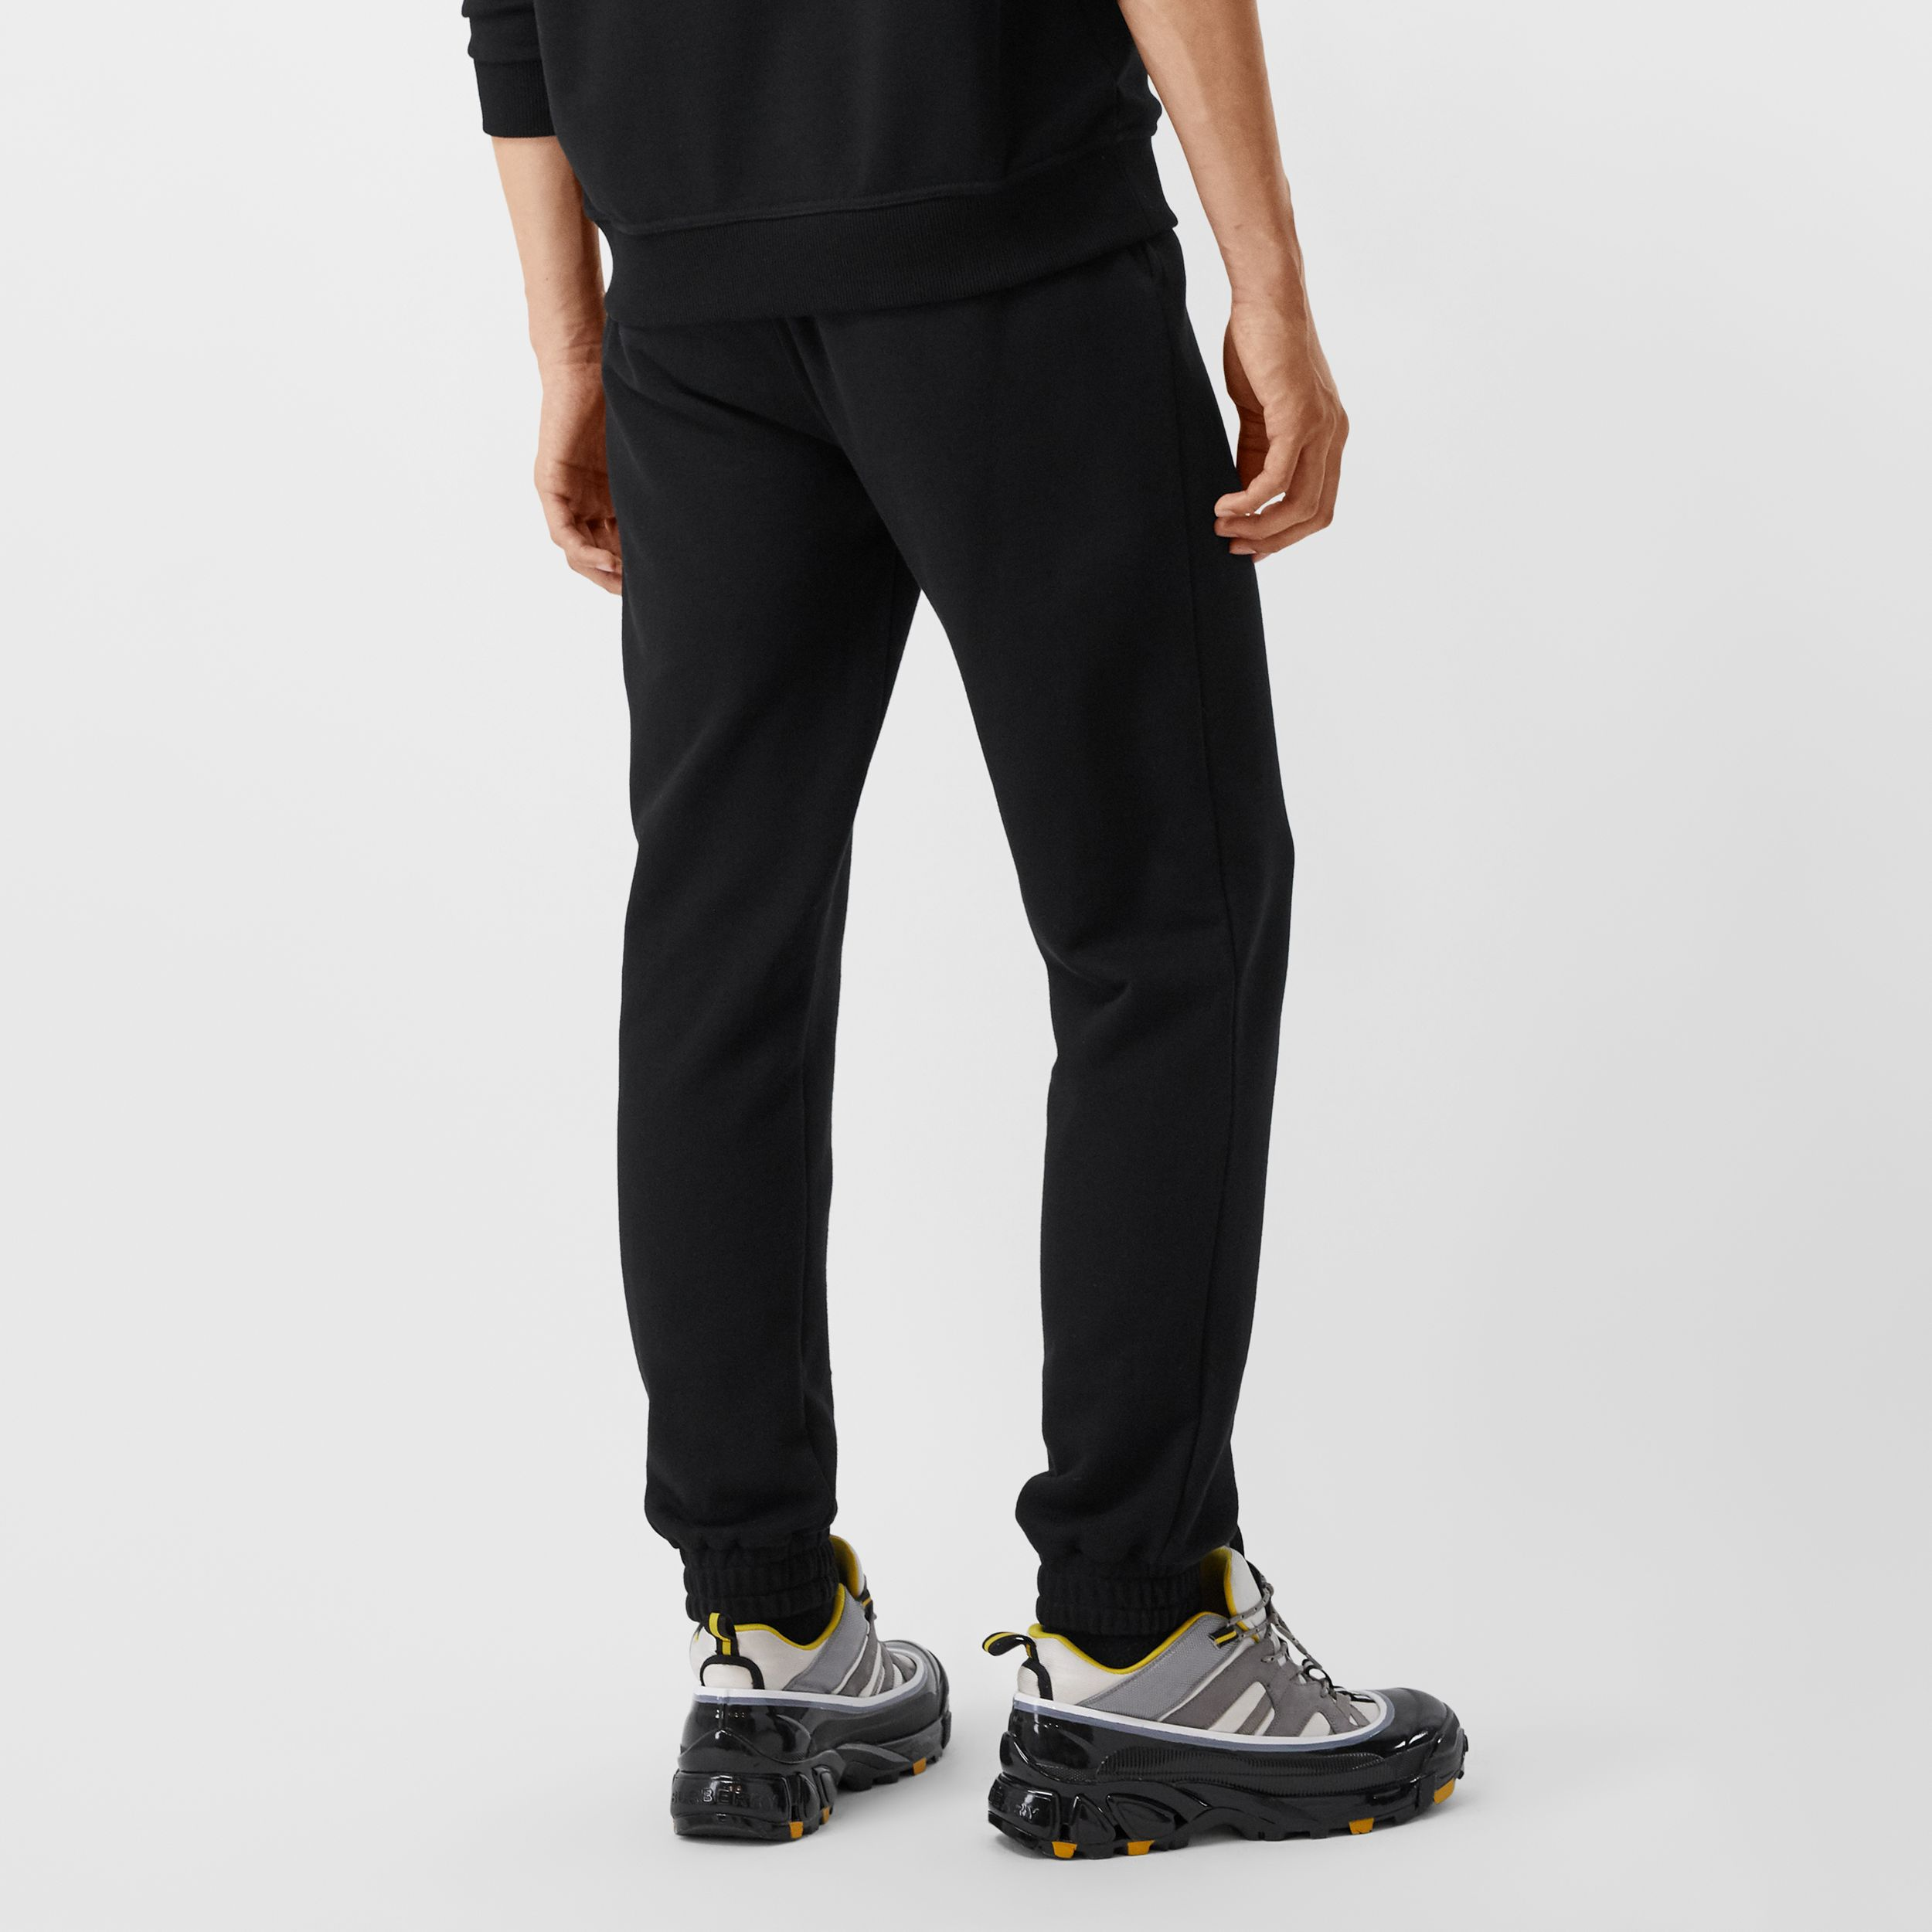 Monogram Motif Cotton Jogging Pants in Black - Men | Burberry Canada - 3